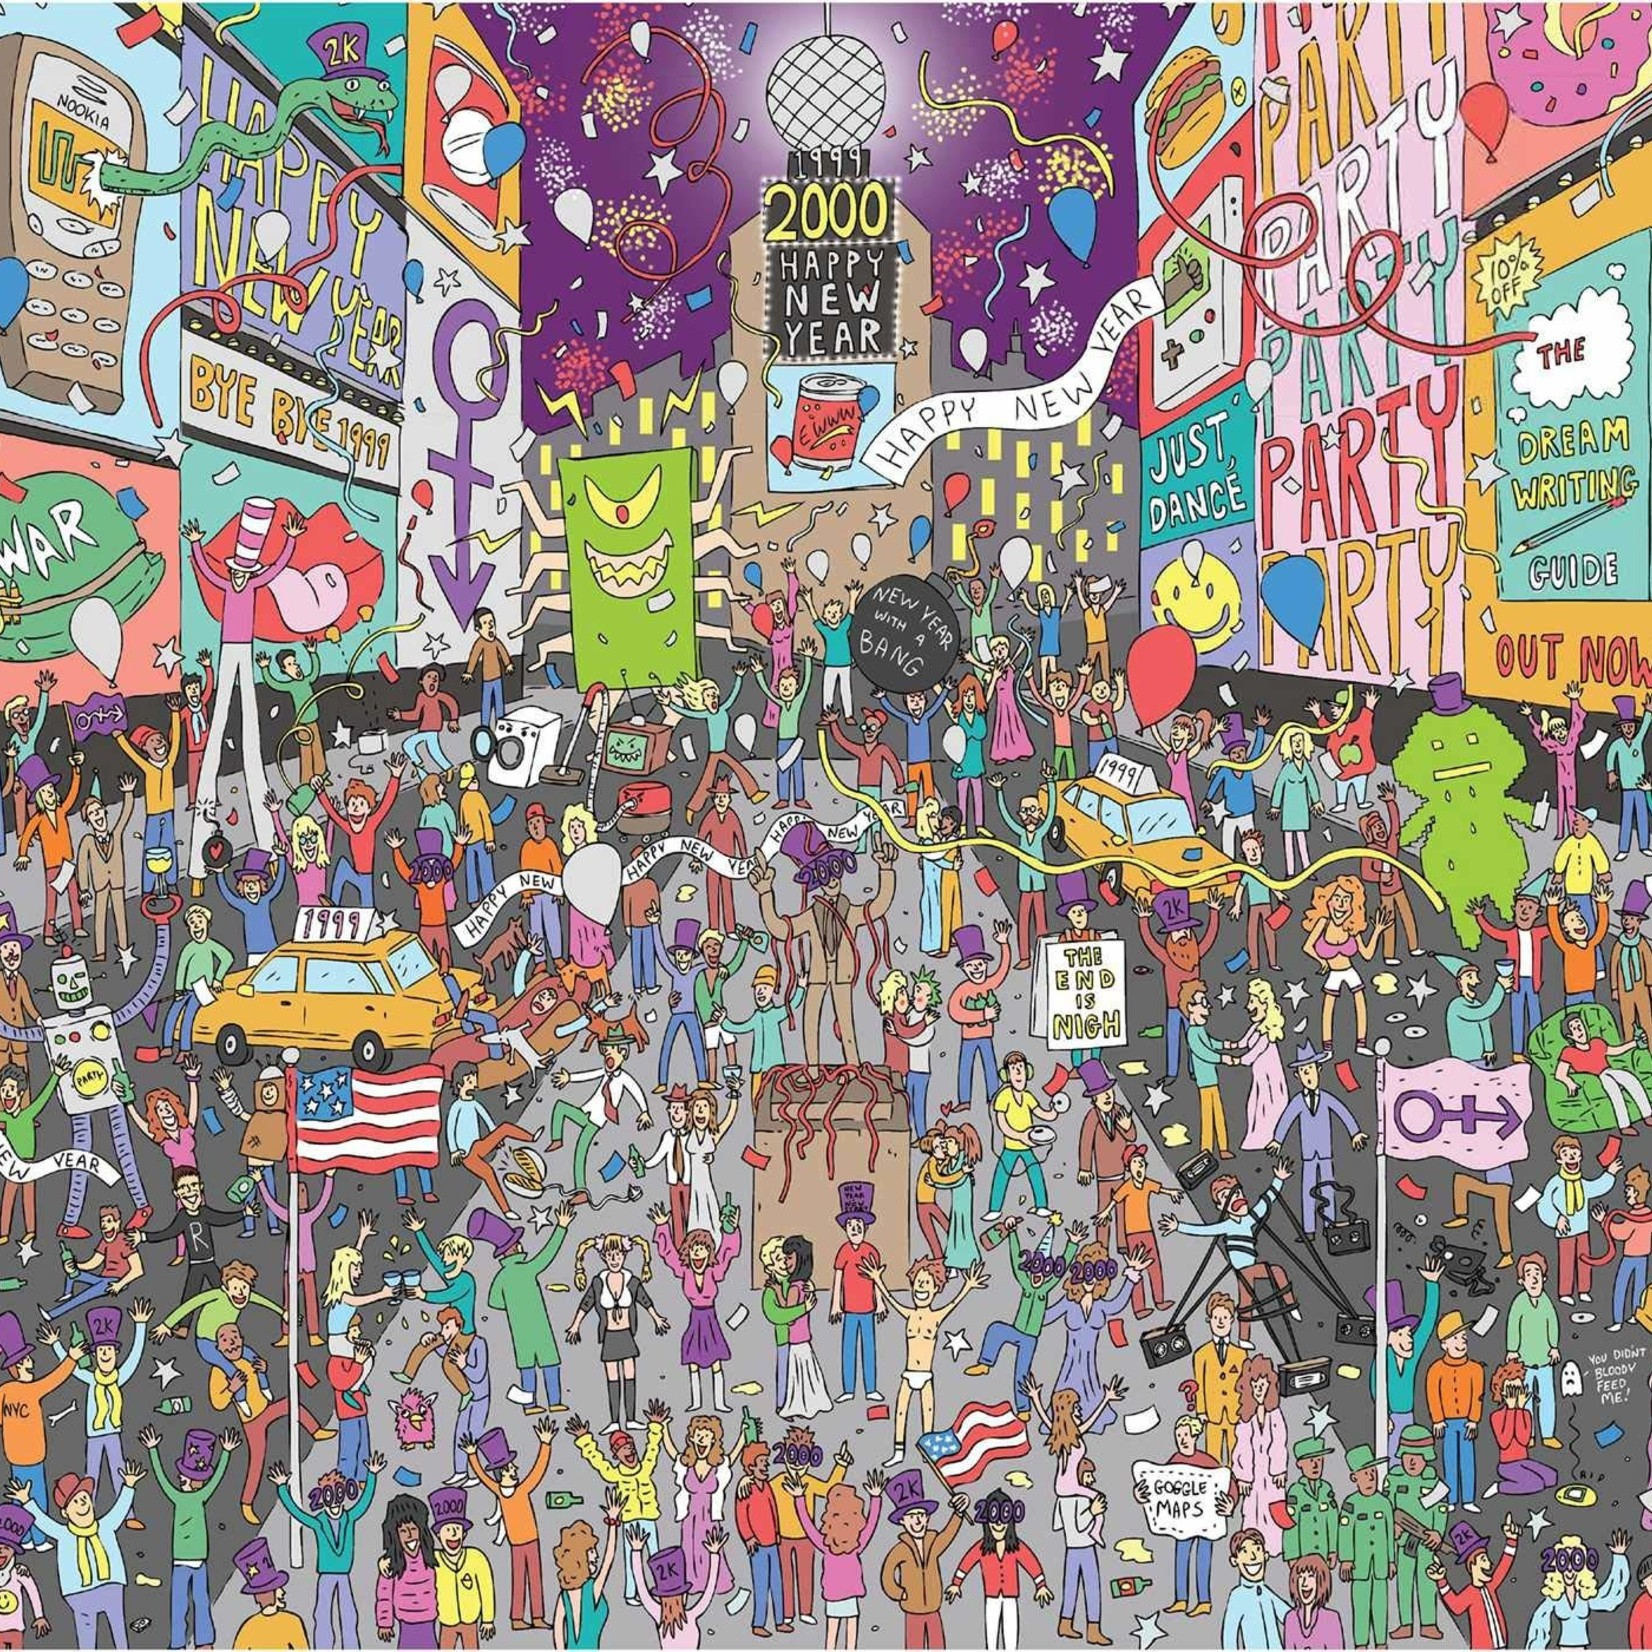 Rizzoli 500 Piece Where's Prince? in 1999 Jigsaw Puzzle